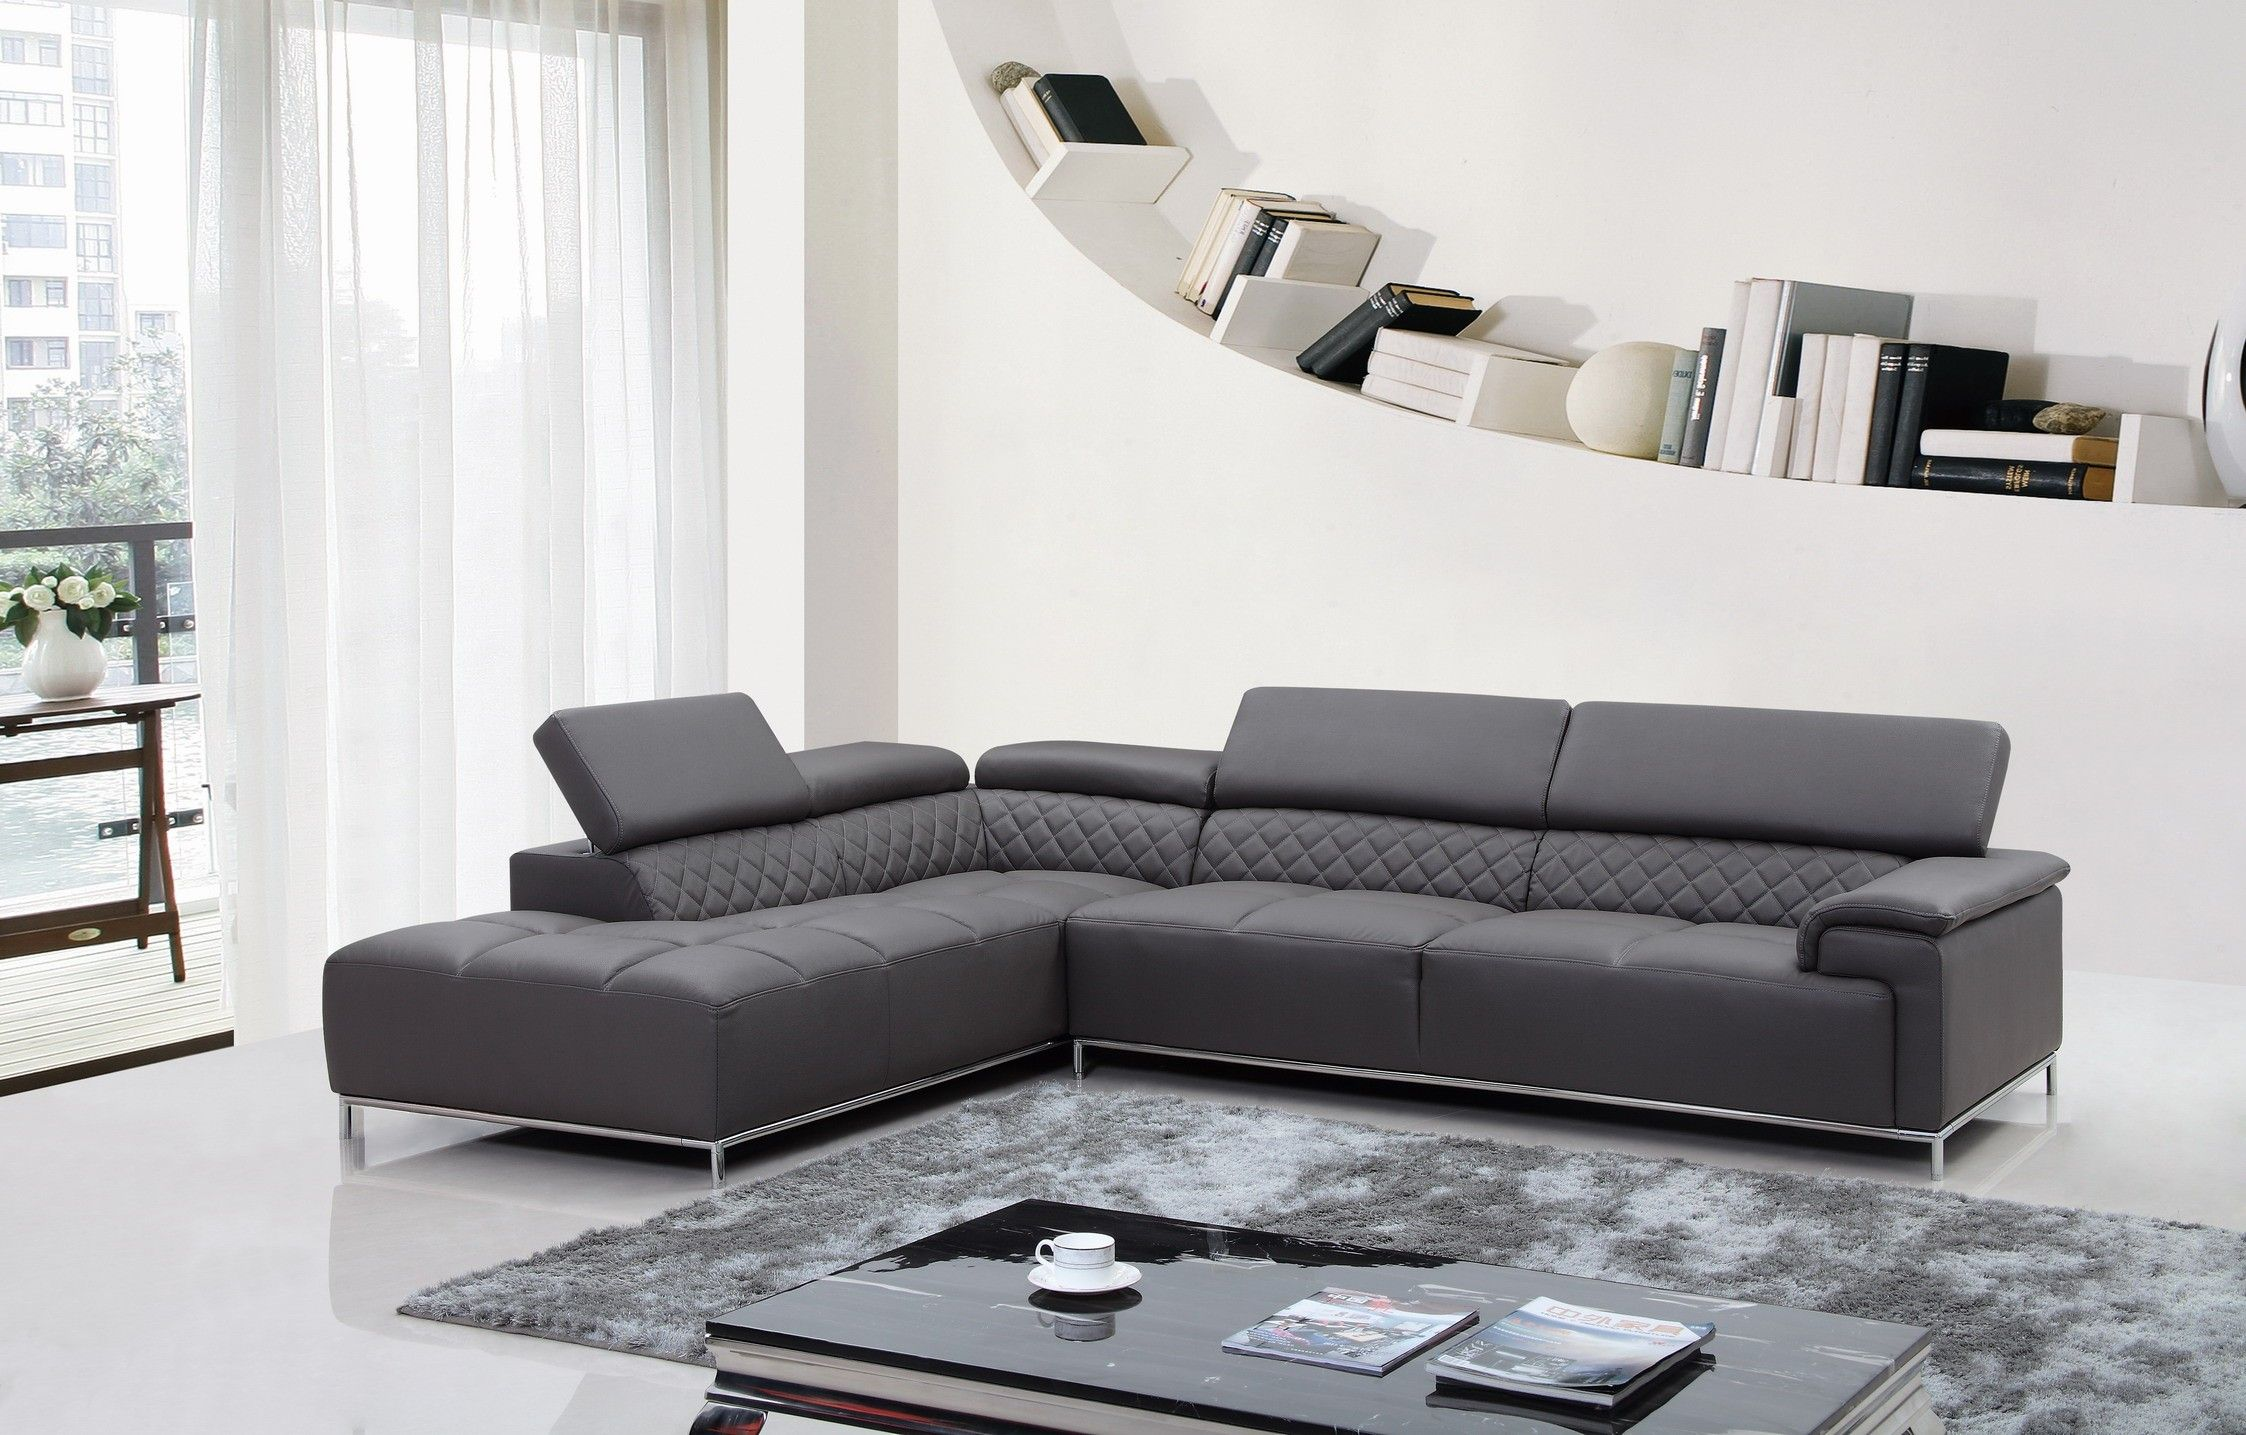 Maximize your modern space with modern sofa beds sofas